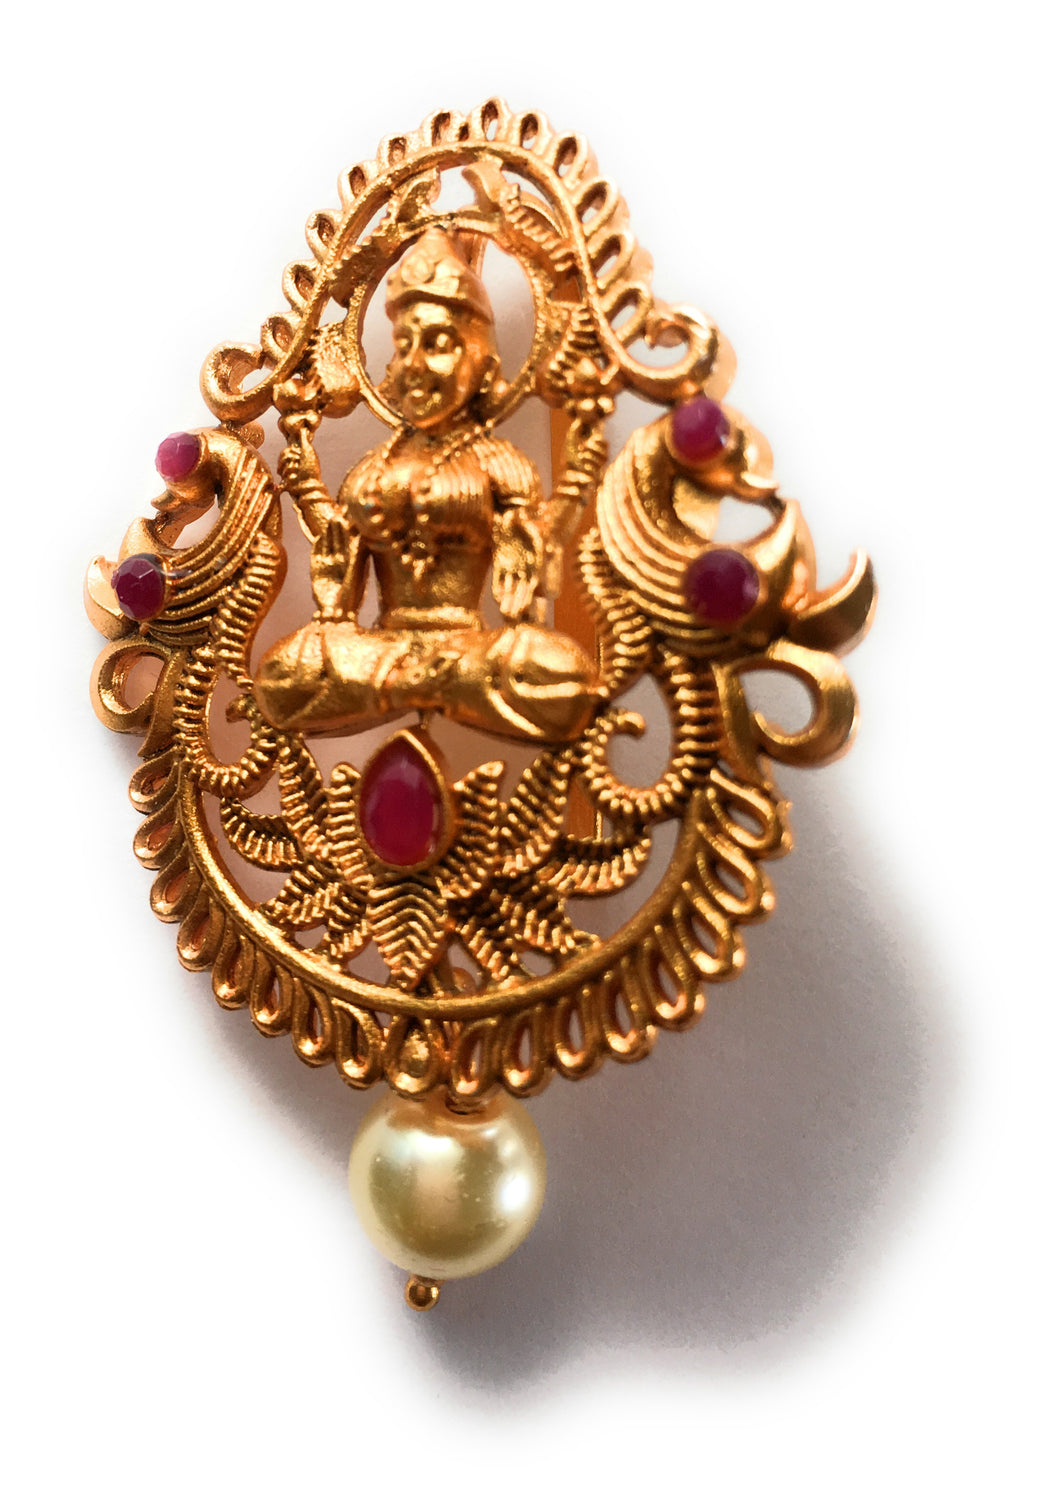 Gold Plated Goddess Lakshmi Decor/Brooch / Pendent/Hair Clip with Red jewels - Size - 2